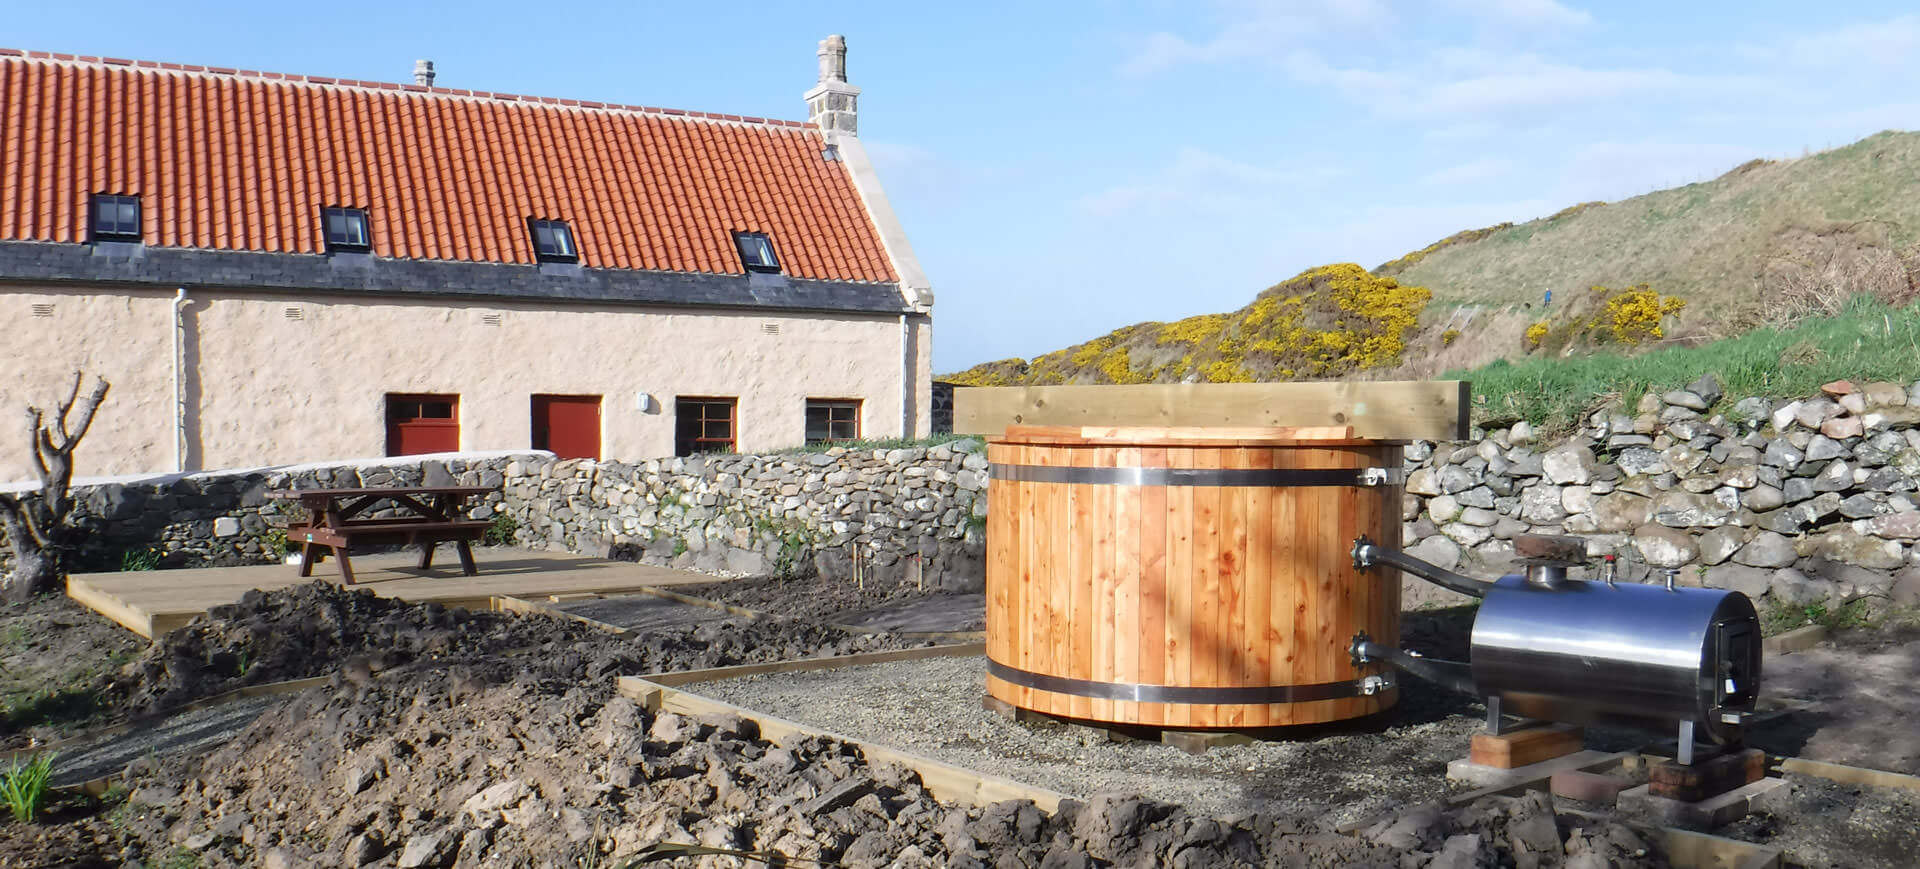 wood burning hot tub at portsoy sailloft bunkhouse